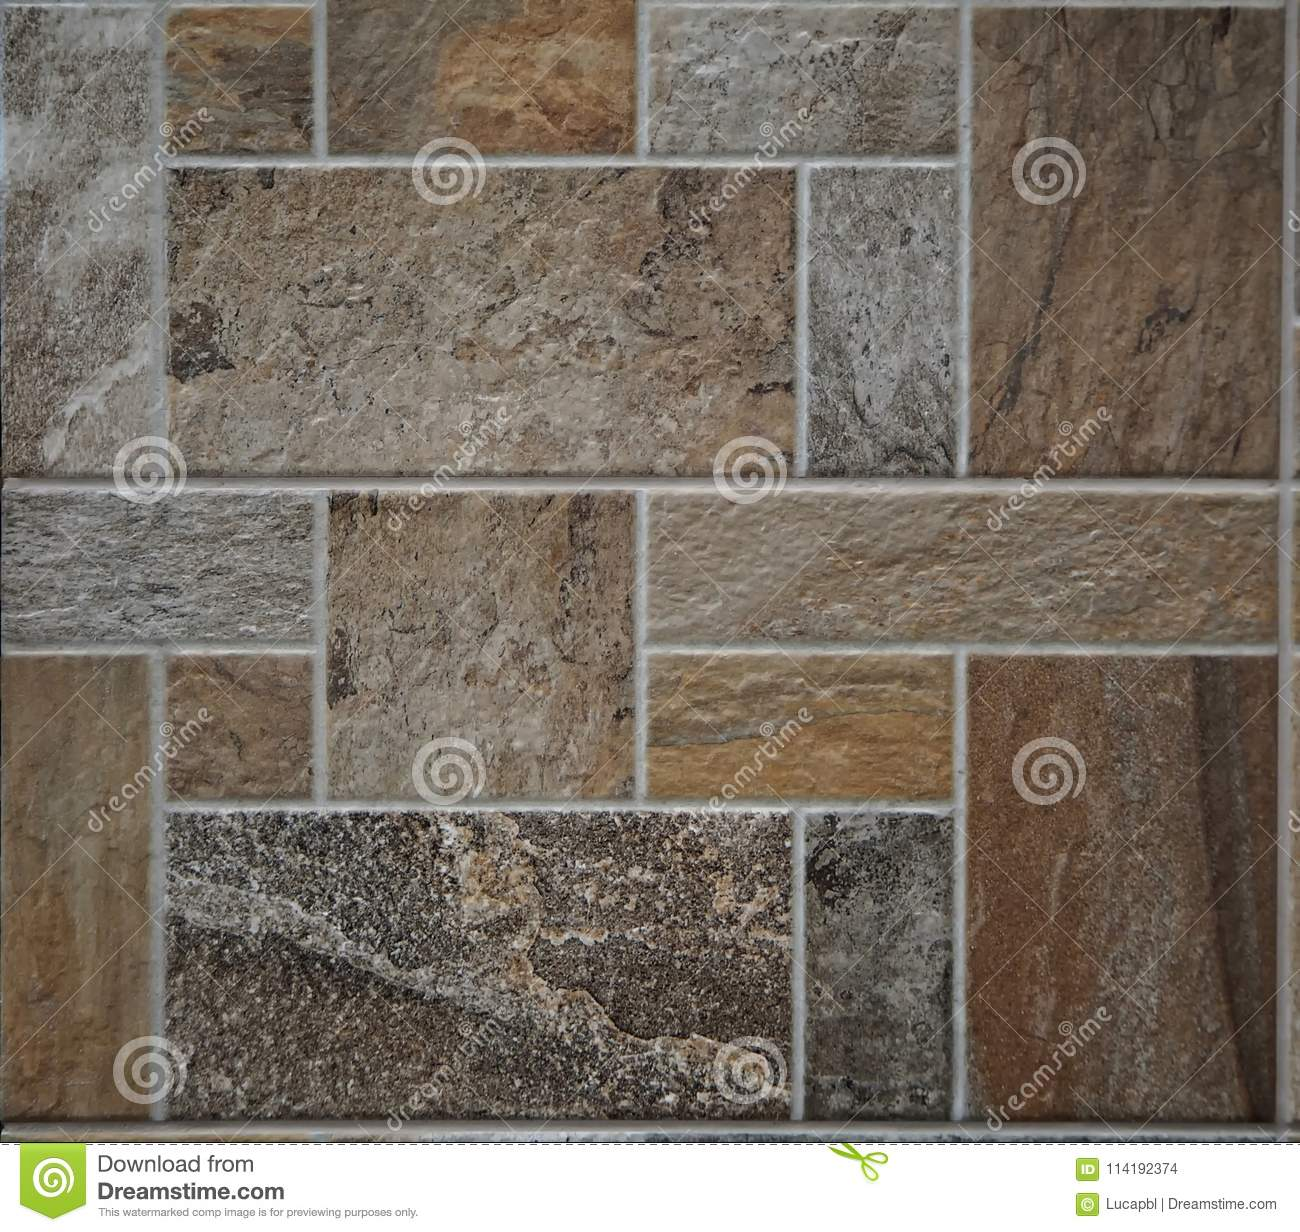 Stone Tile Rustic Floor The Tiles Are Made Of Polished Rocks Of